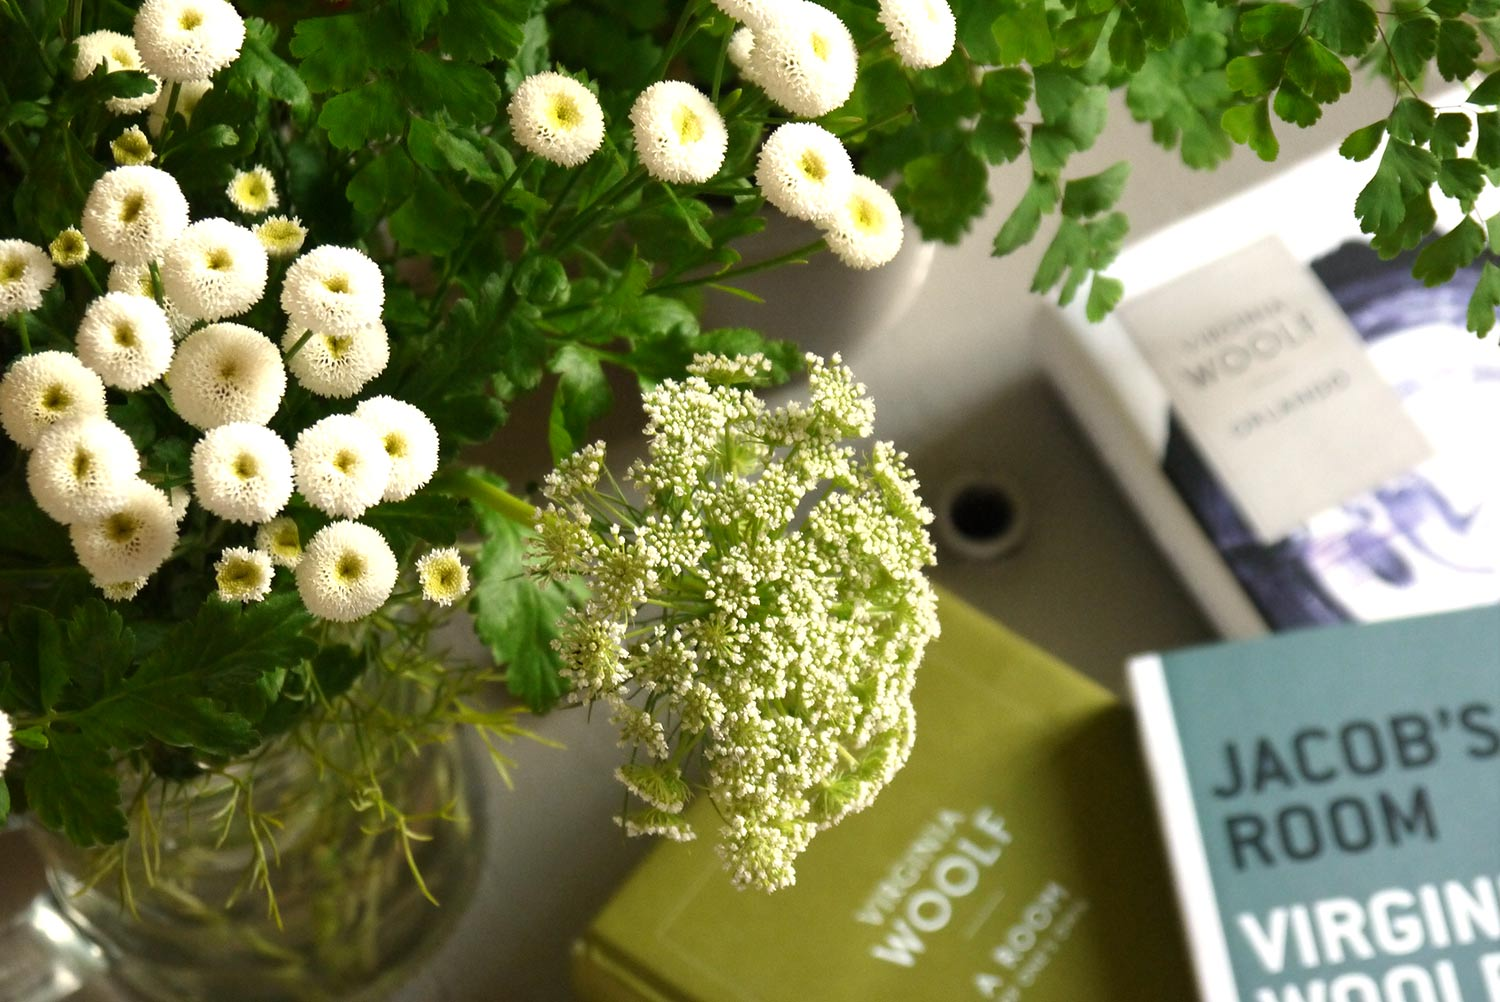 Flowers with several editions of Virginia Woolf's works